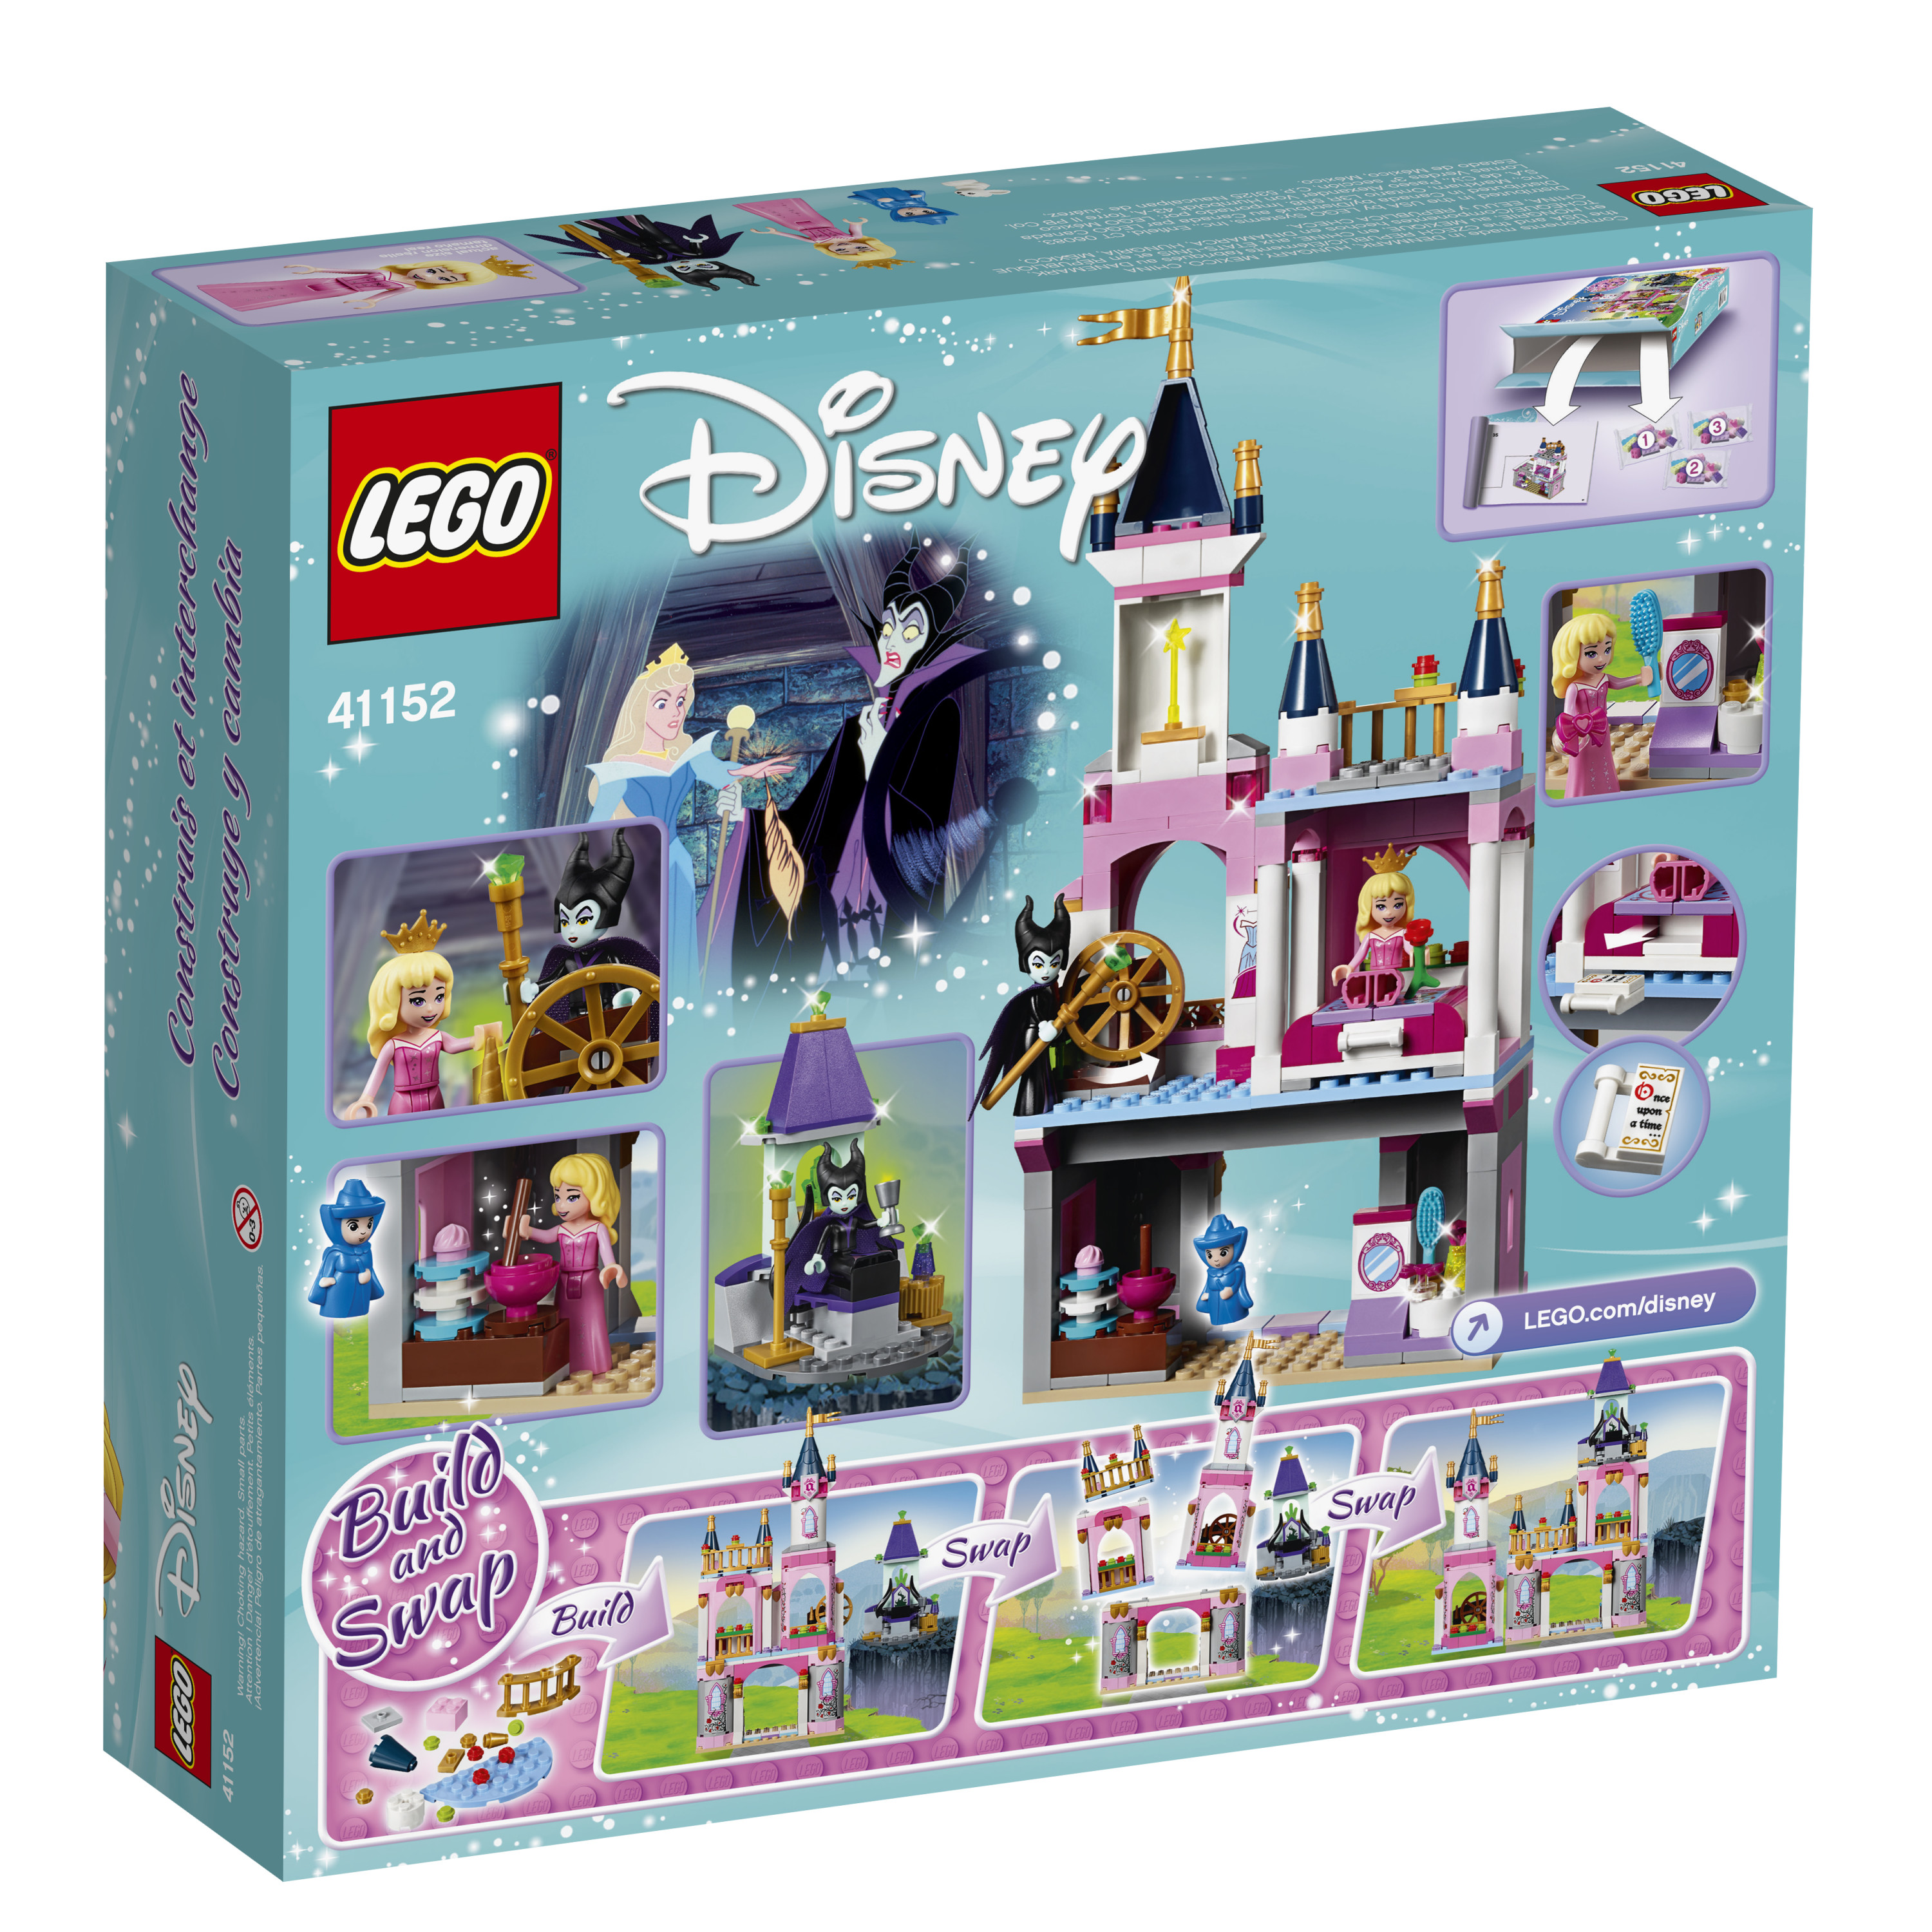 LEGO Disney Princess Sleeping Beauty's Fairytale Castle 41152